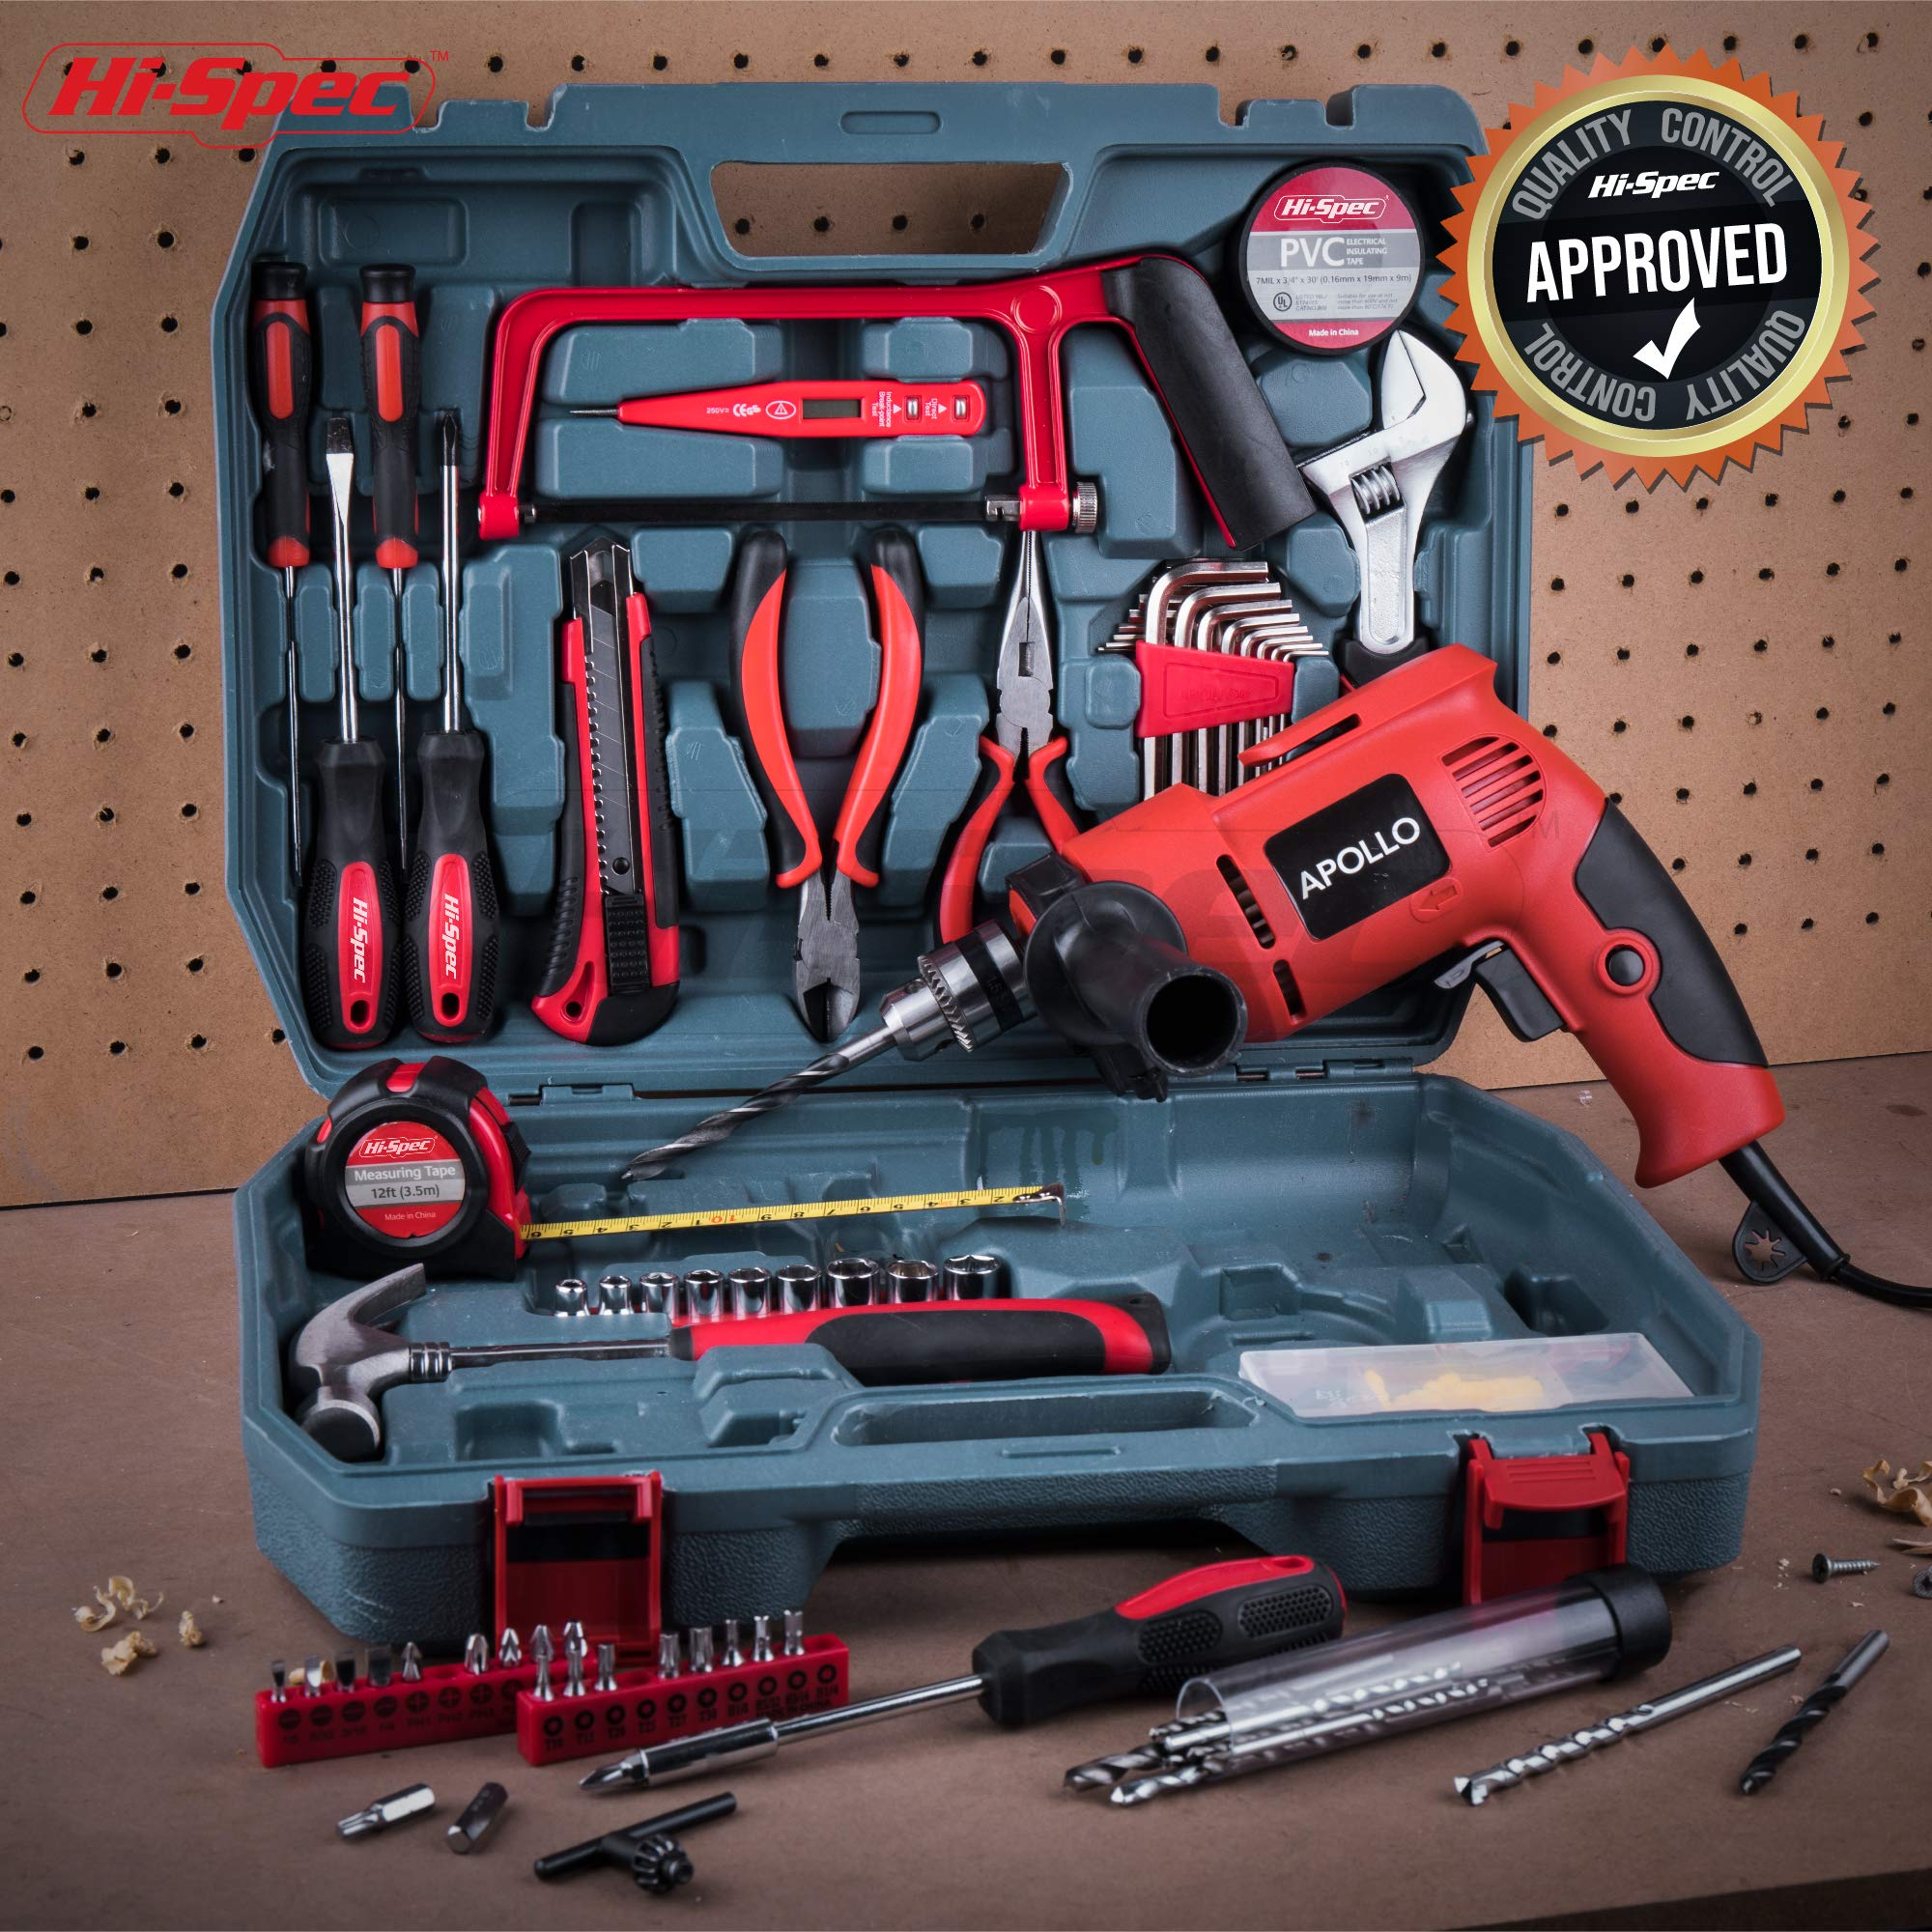 Hi-Spec Complete 130pc 110V 300W Hammer Power Drill & Hand Tool Set Combo Kit with Hacksaw, Pliers, Claw-Hammer, Wrench, Box Cutter, Hex Keys, Screwdrivers, Socket and Driver Bits, Voltage Tester Case by Hi-Spec (Image #7)